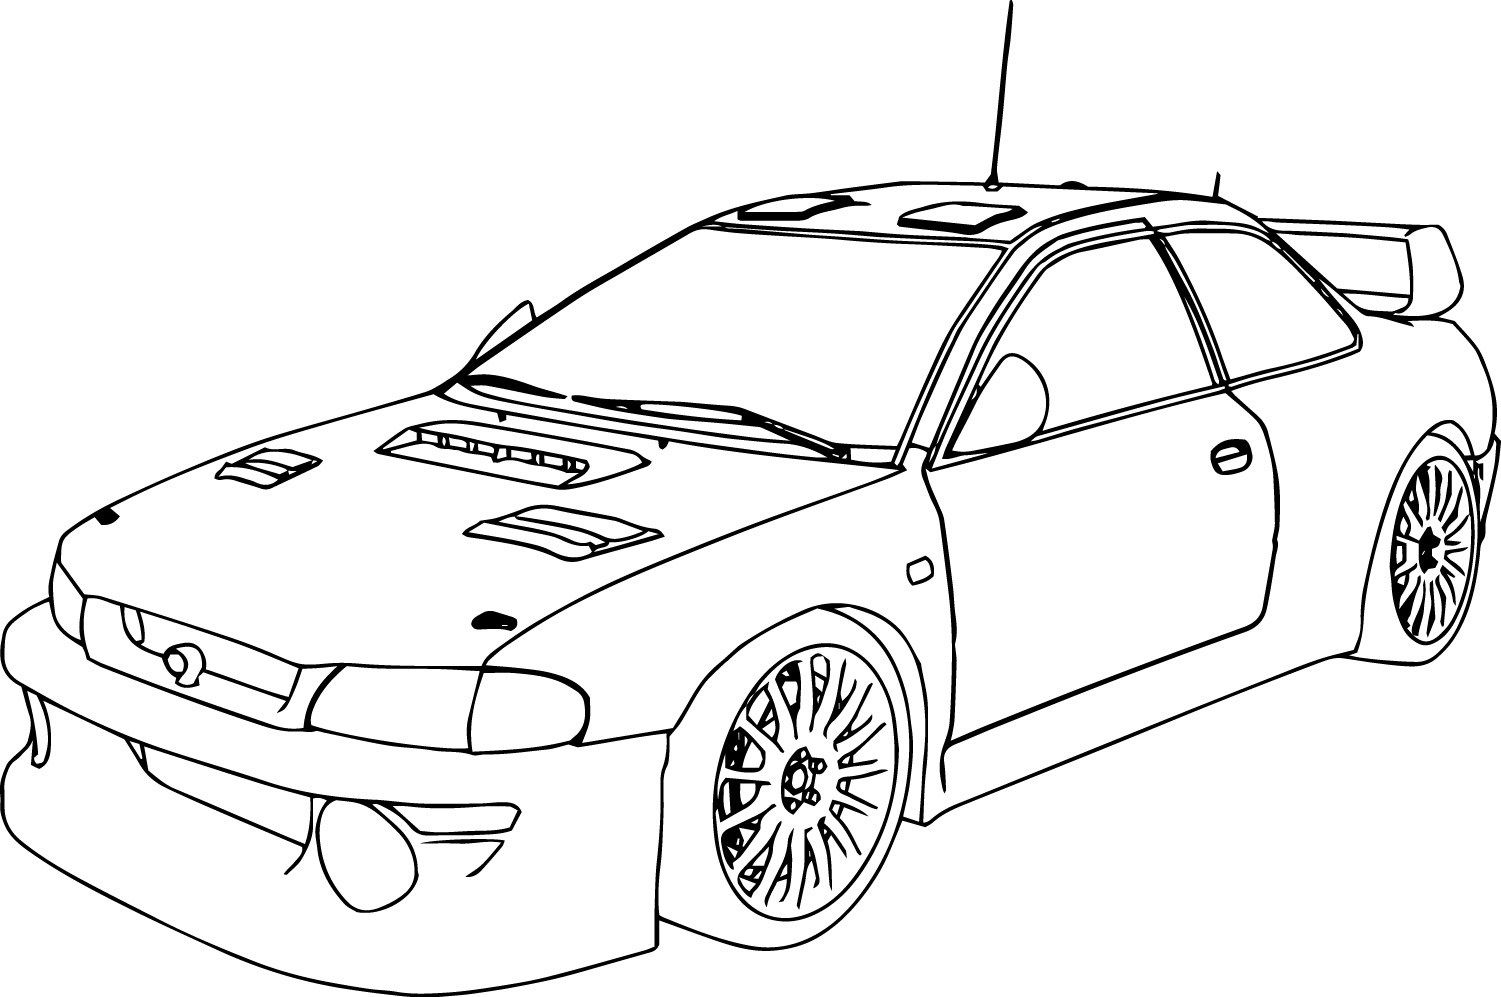 coloring cars pages carz craze cars coloring pages coloring cars pages